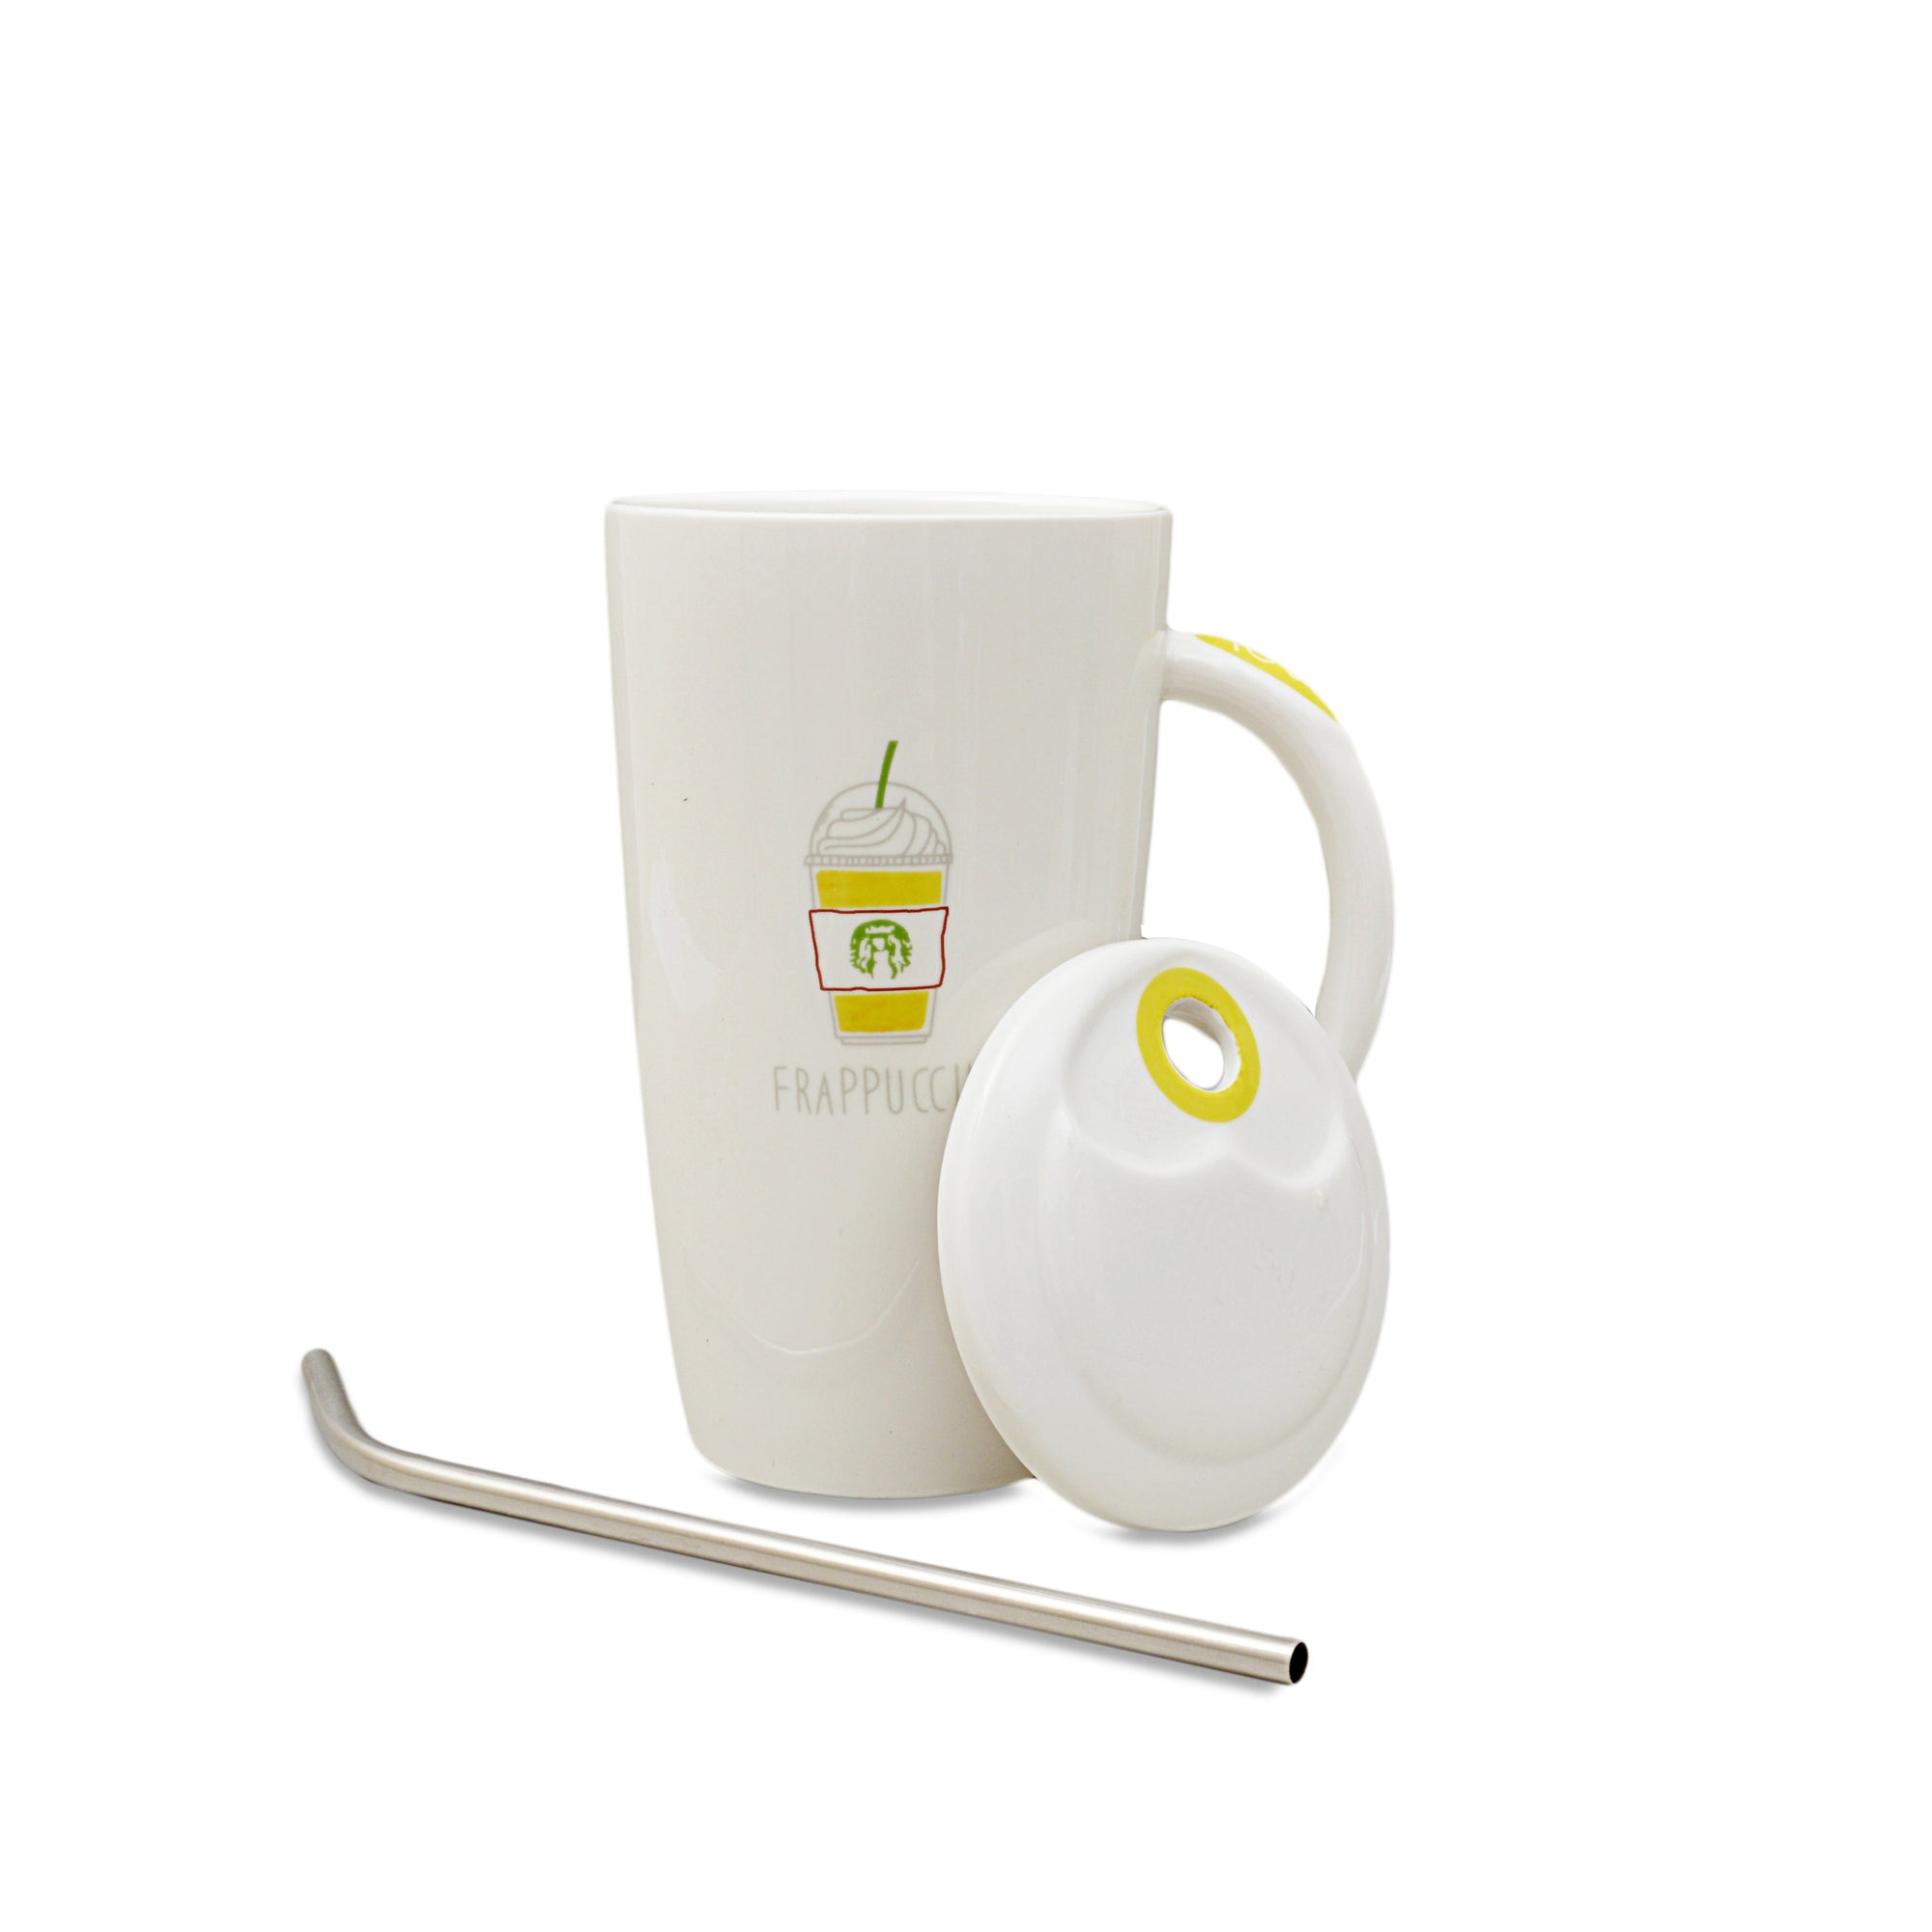 Special Frappuccino Lovers Ceramic Mug With Lid And Spoon